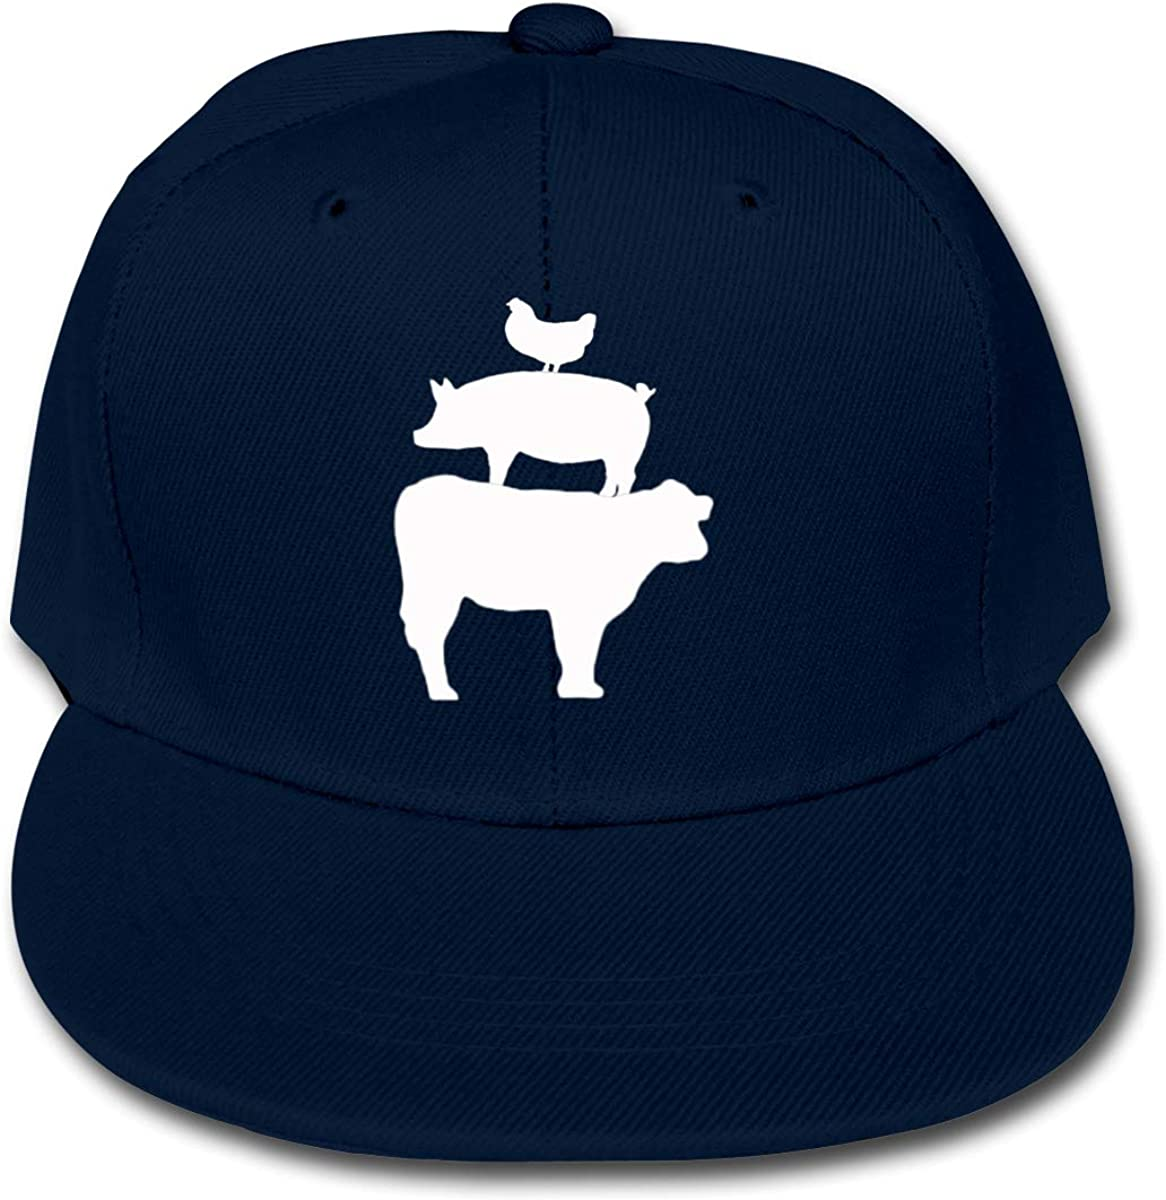 Boys Reservation Girls Animals Don't miss the campaign Stacked Cattle Chicken Pig Baseba Solid Color